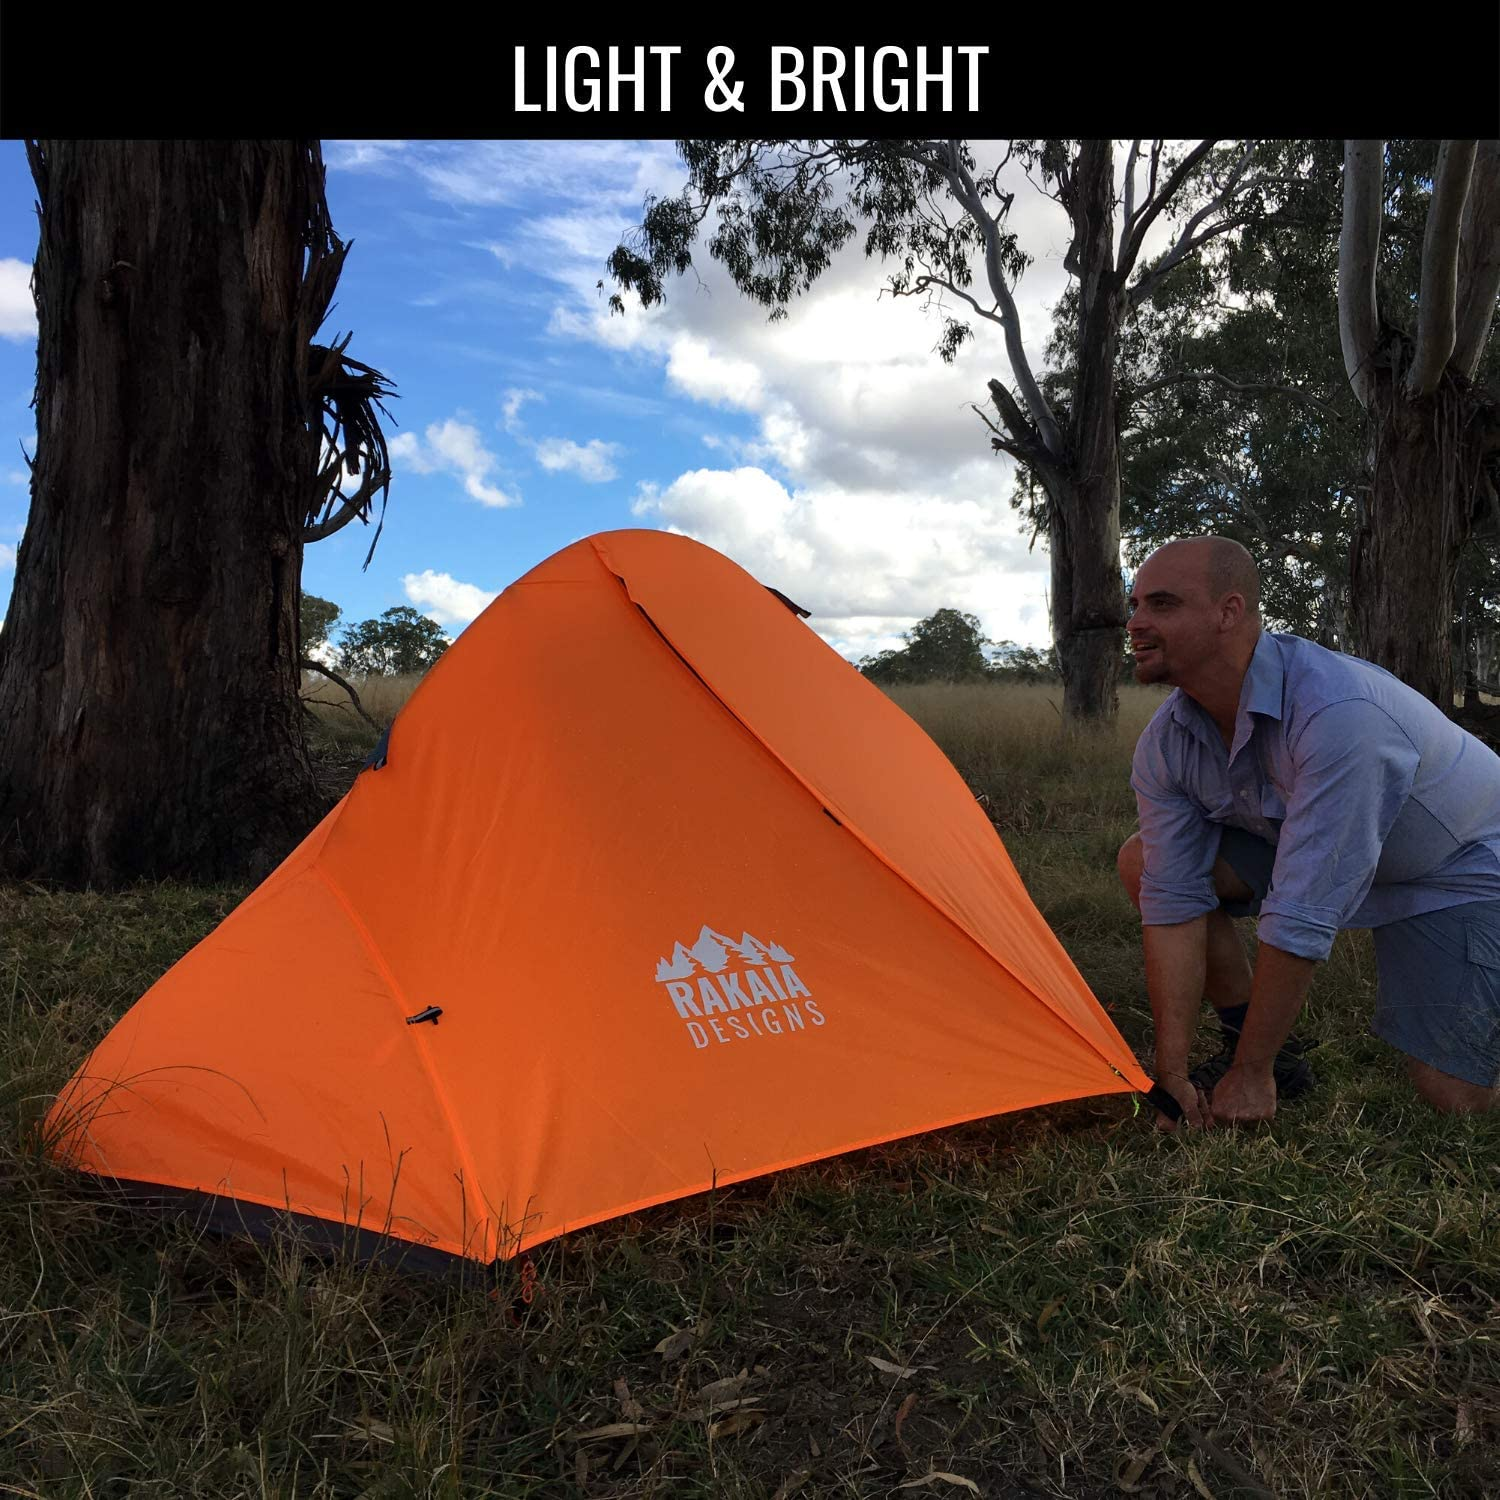 1 Person Lightweight Backpacking Tent with Stakes /& Guys 3-4 Season Free Standing Camping Hiking Waterproof Backpack Tent